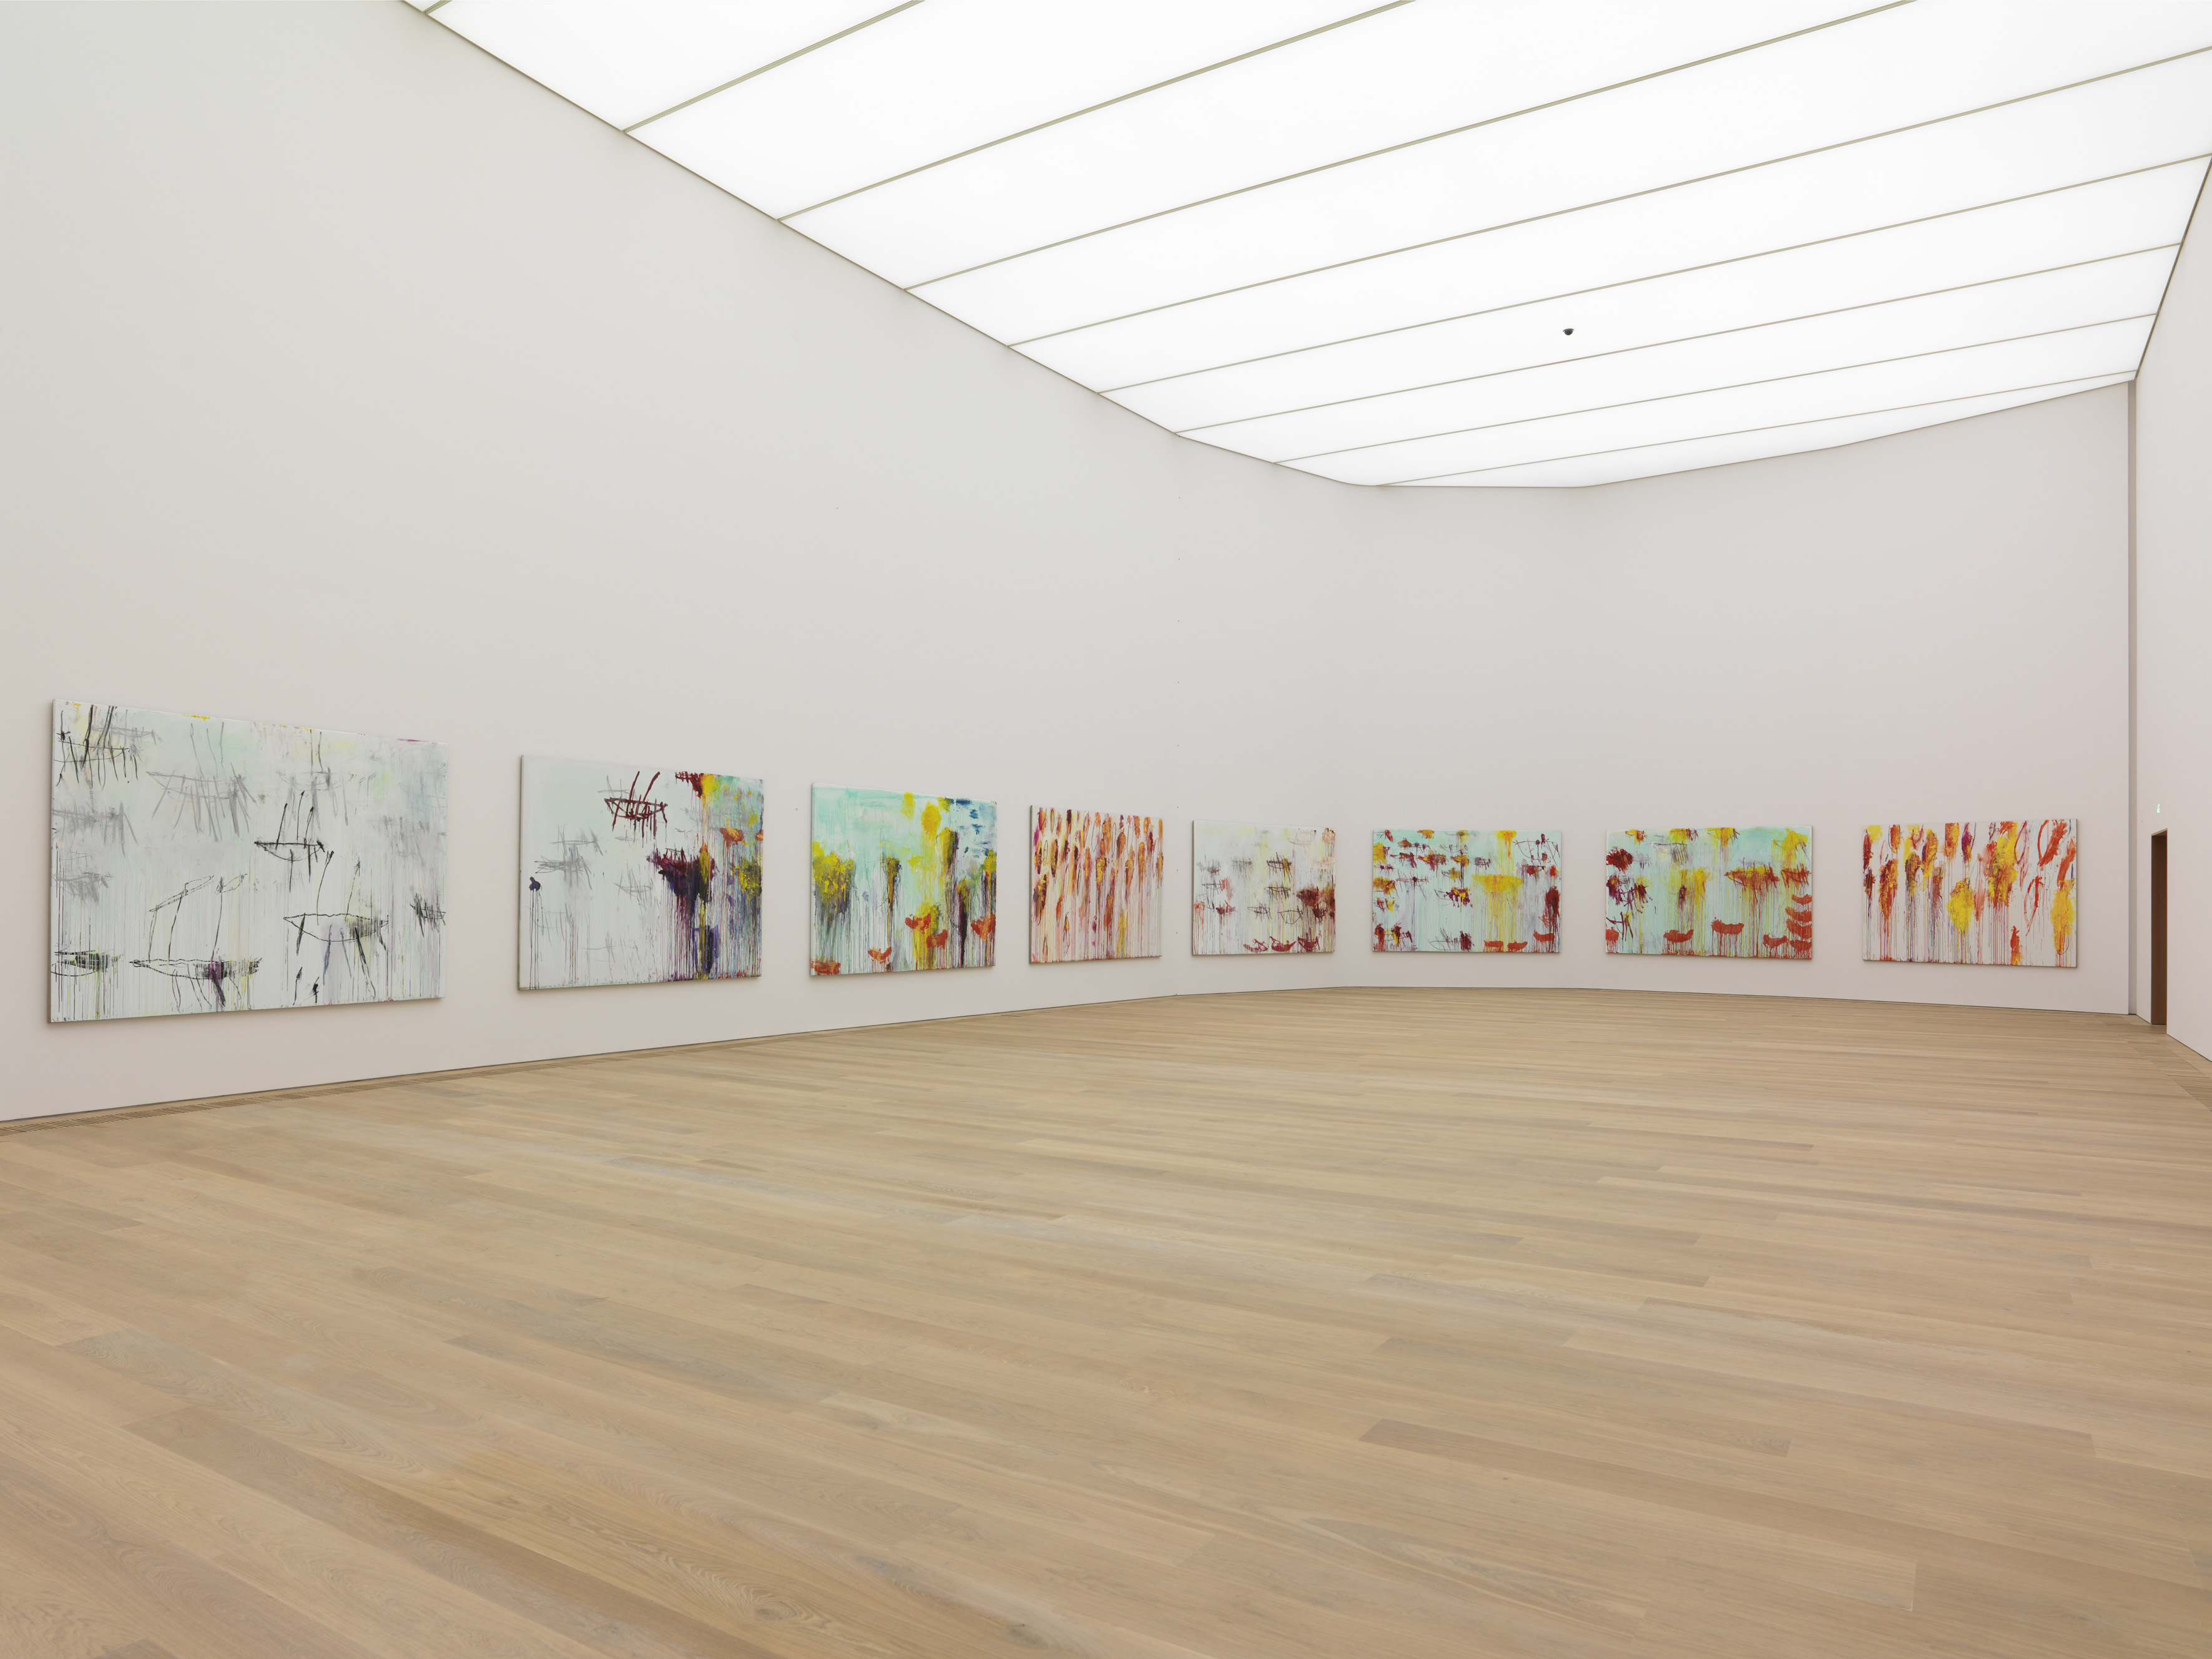 Interior view of the Museum Brandhorst with Cy Twombly's Lepanto cycle